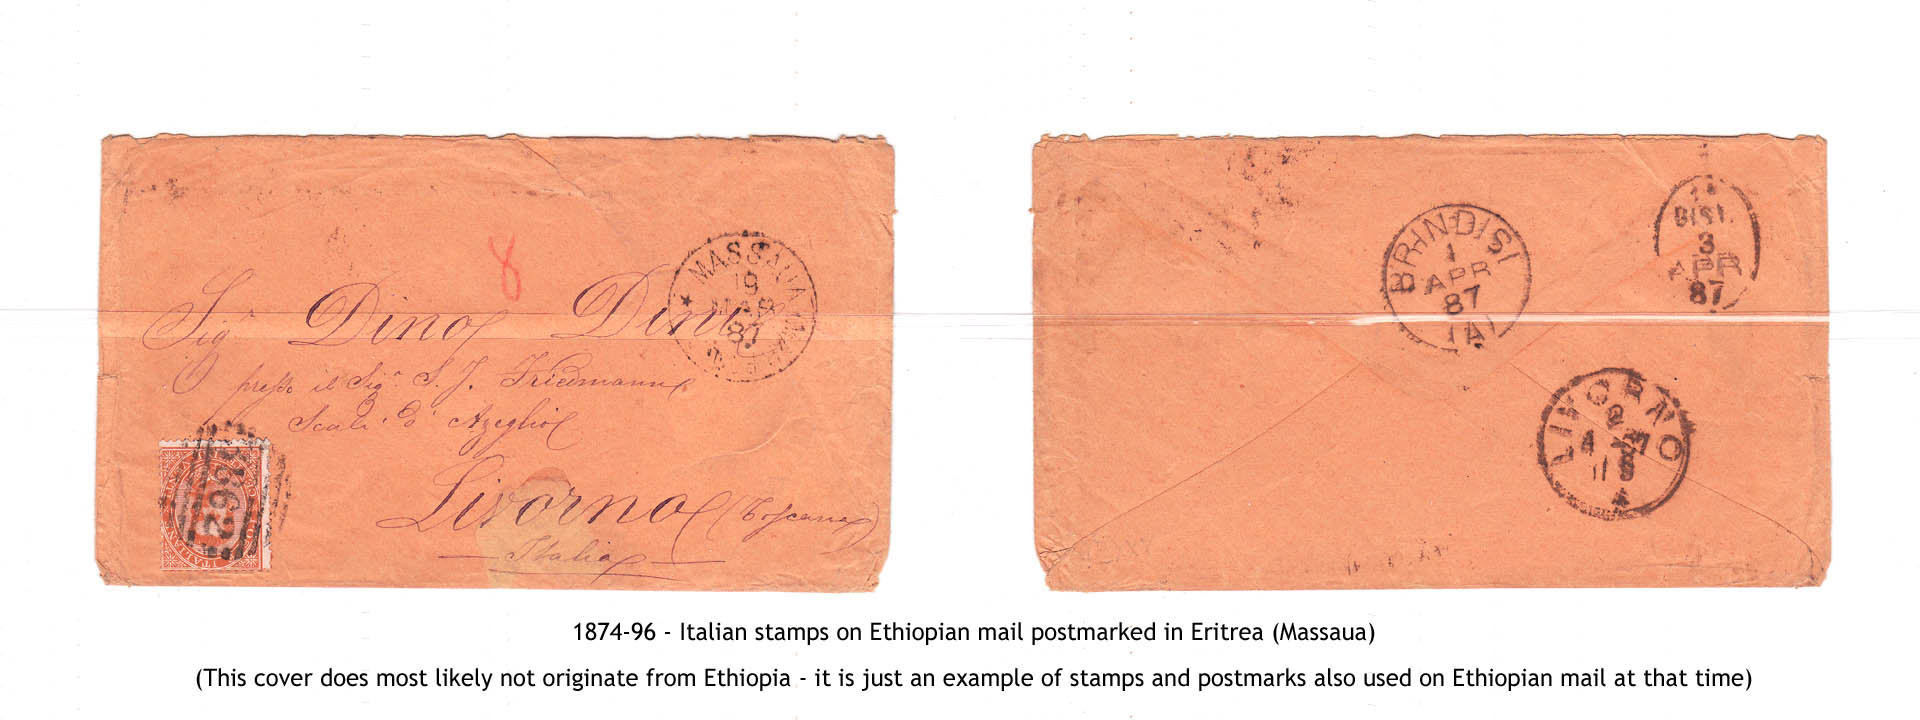 1874-96 - Italian stamps on Ethiopian mail postmarked in Eritrea